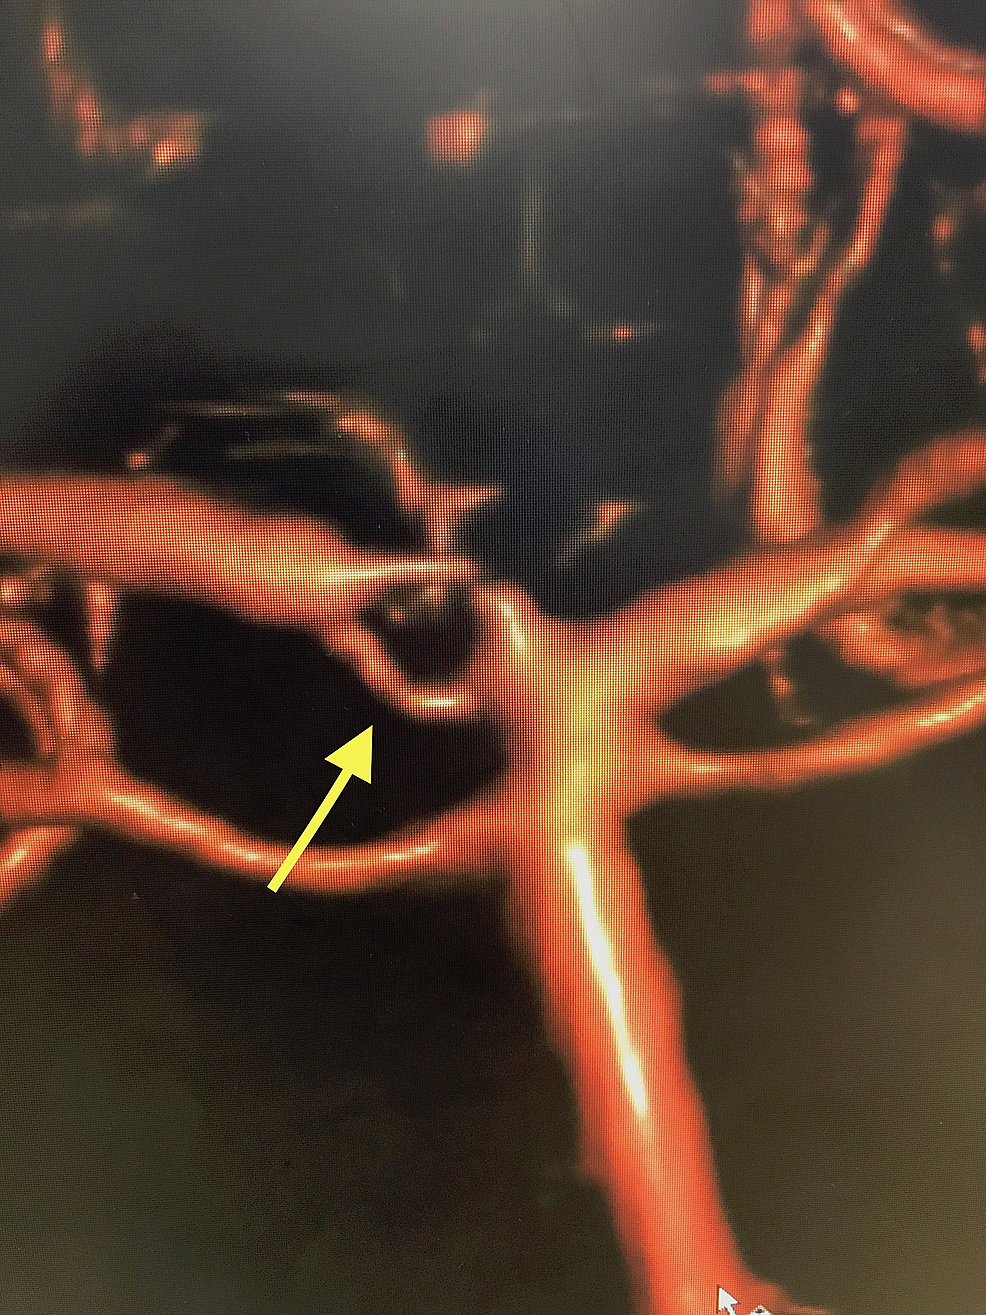 Here-we-see-a-bifurcation-of-the-basilar-artery-into-left-and-right-posterior-cerebral-arteries.-Note-the-fenestration-of-the-P1-segment-of-the-right-posterior-cerebral-artery-highlighted-by-the-yellow-arrow.